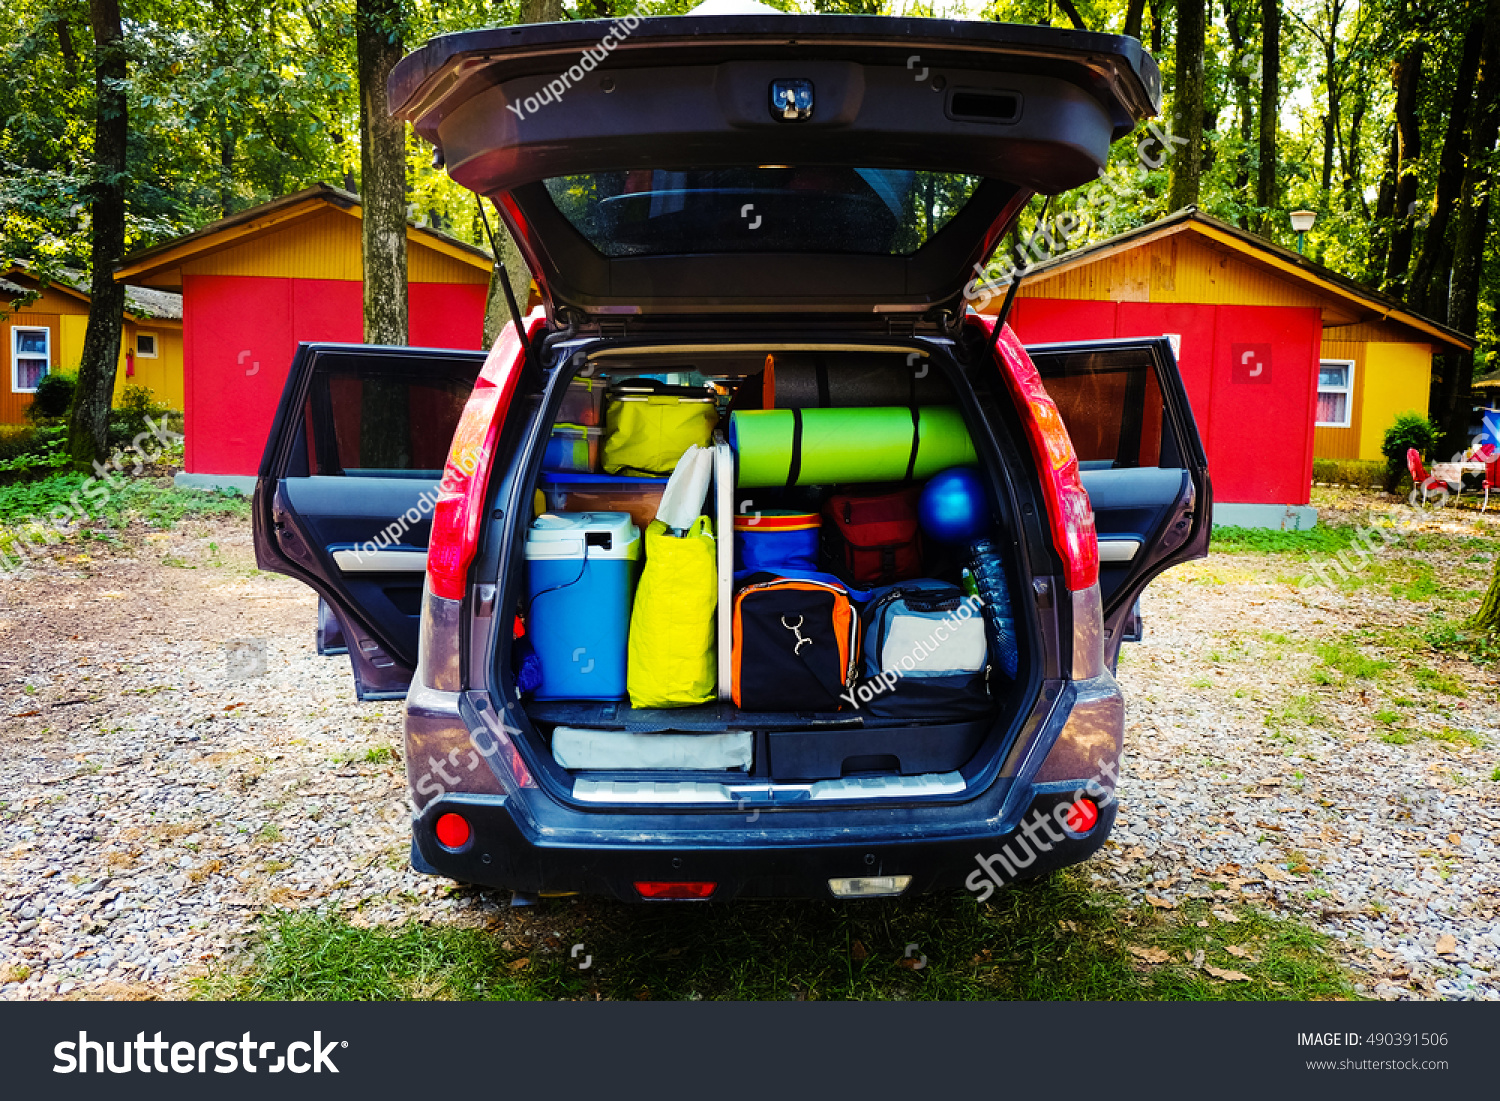 Travel Car Camping Luggage Packed Full Stock Photo ...